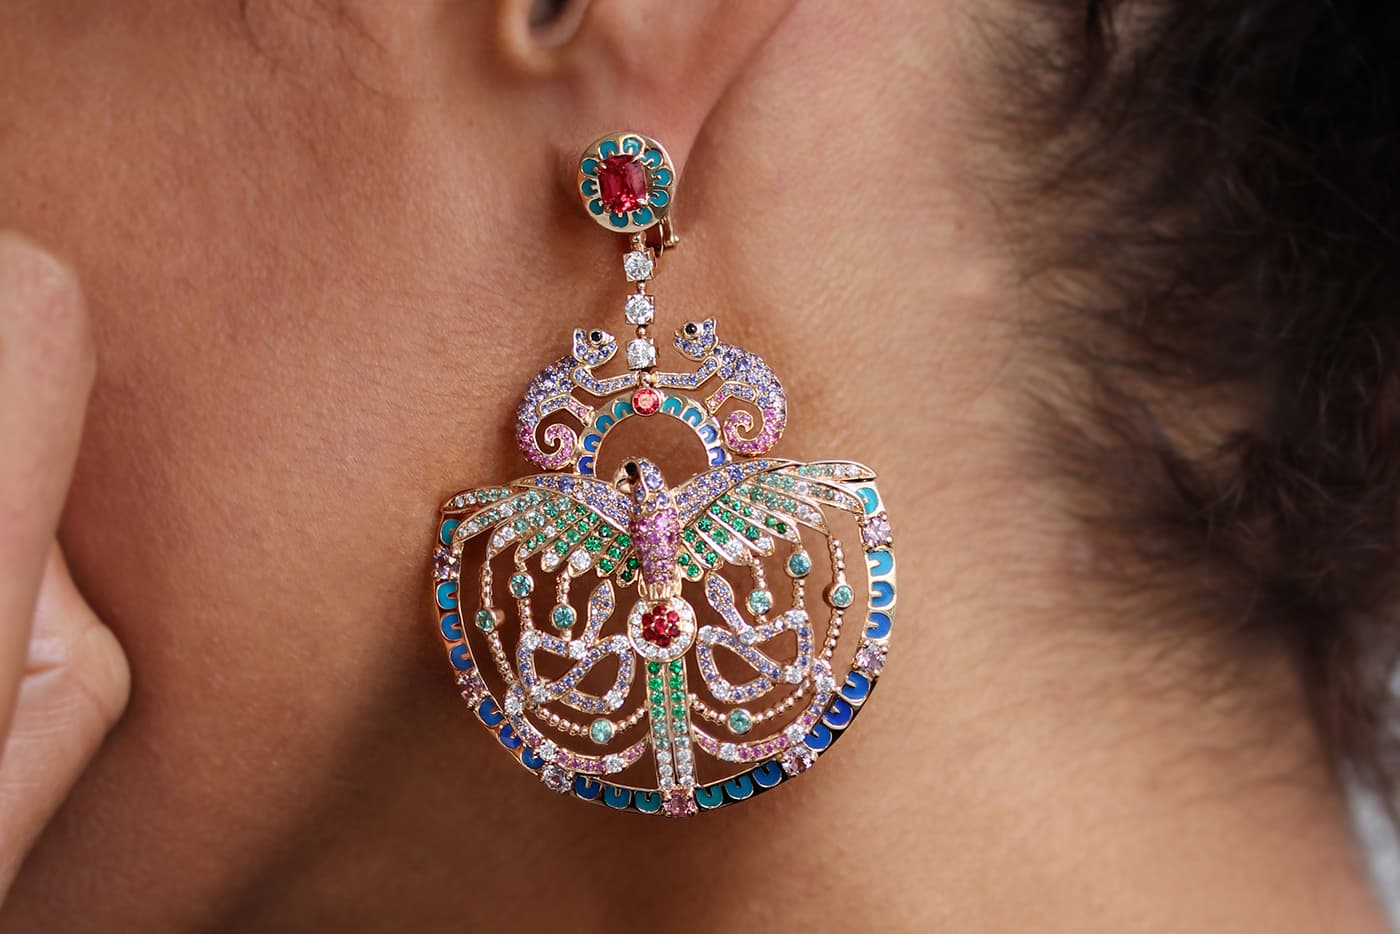 Aude Mathon x Émeline Piot 'Unique'collection 'Quetzal' earrings with spinels, tourmaline, sapphires, diamonds and emeralds in enamel and yellow gold